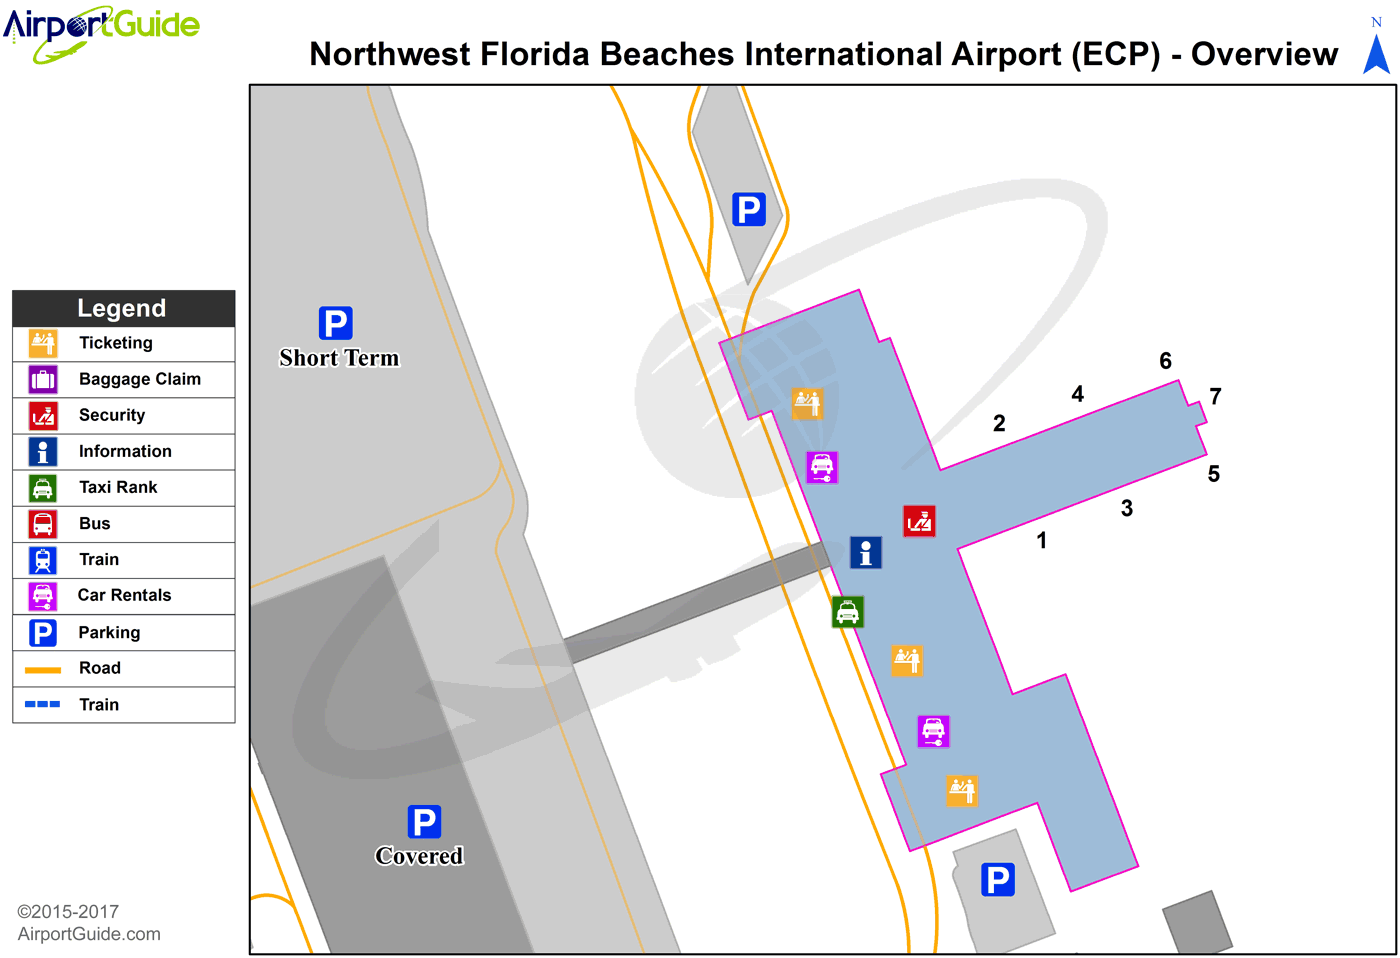 Panama City - Northwest Florida Beaches International (ECP) Airport Terminal Map - Overview